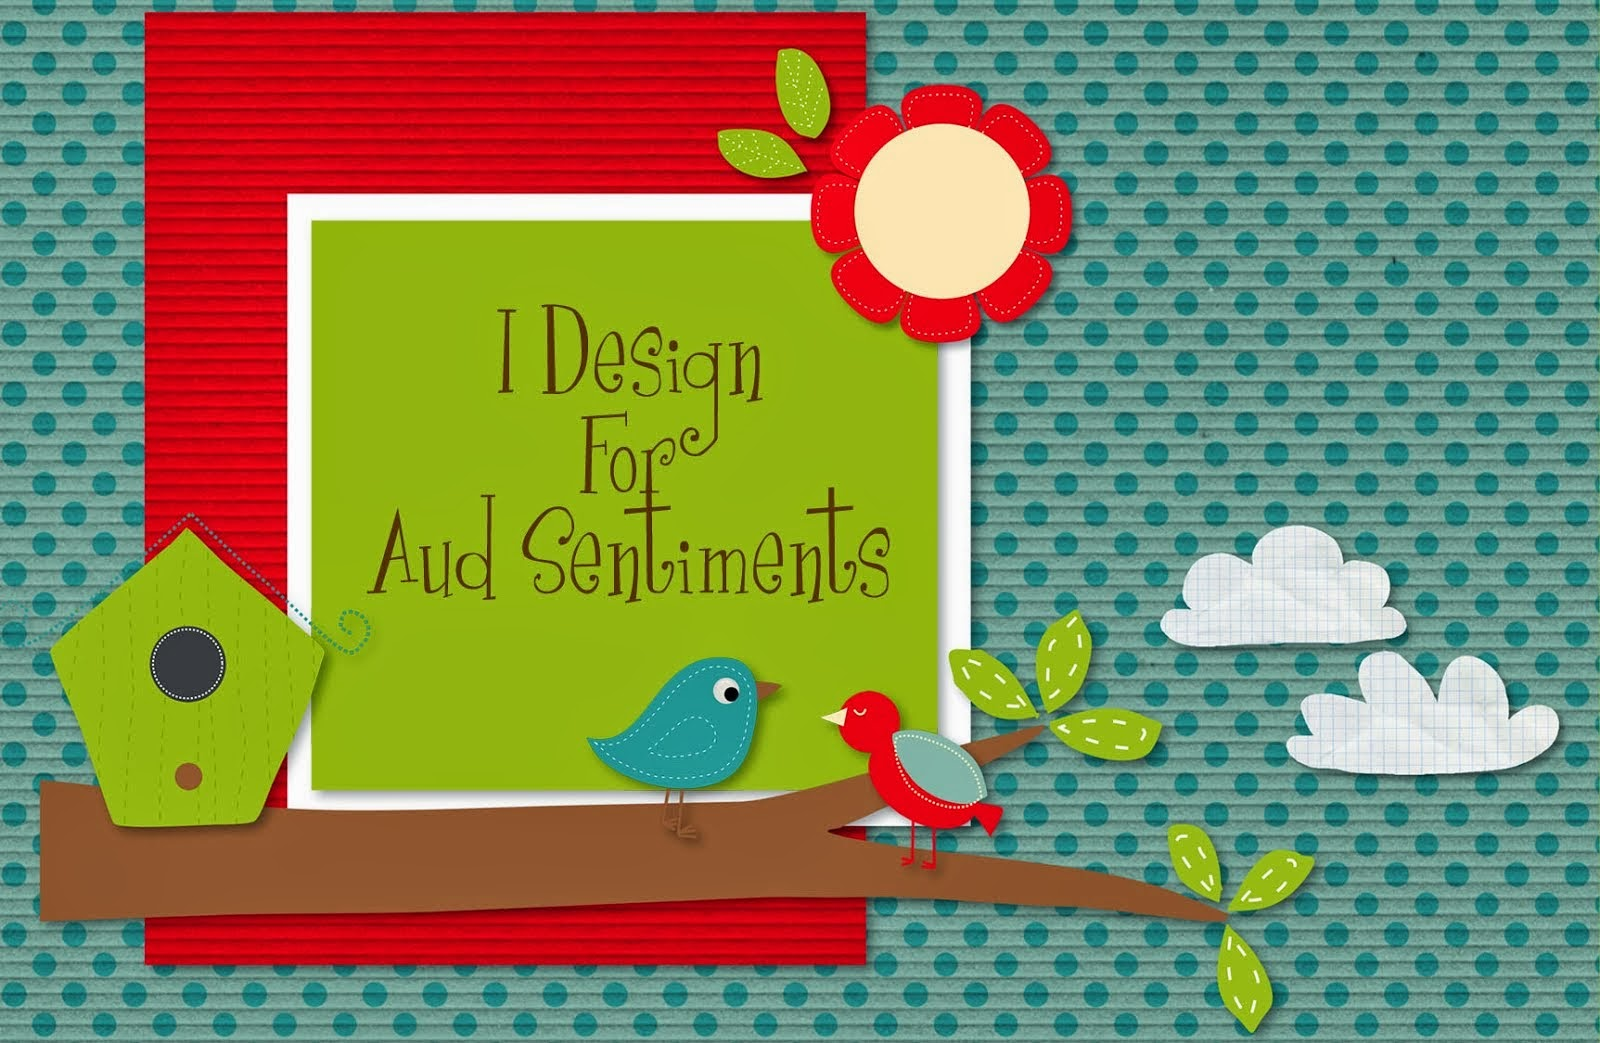 I Designed for Aud Sentiments